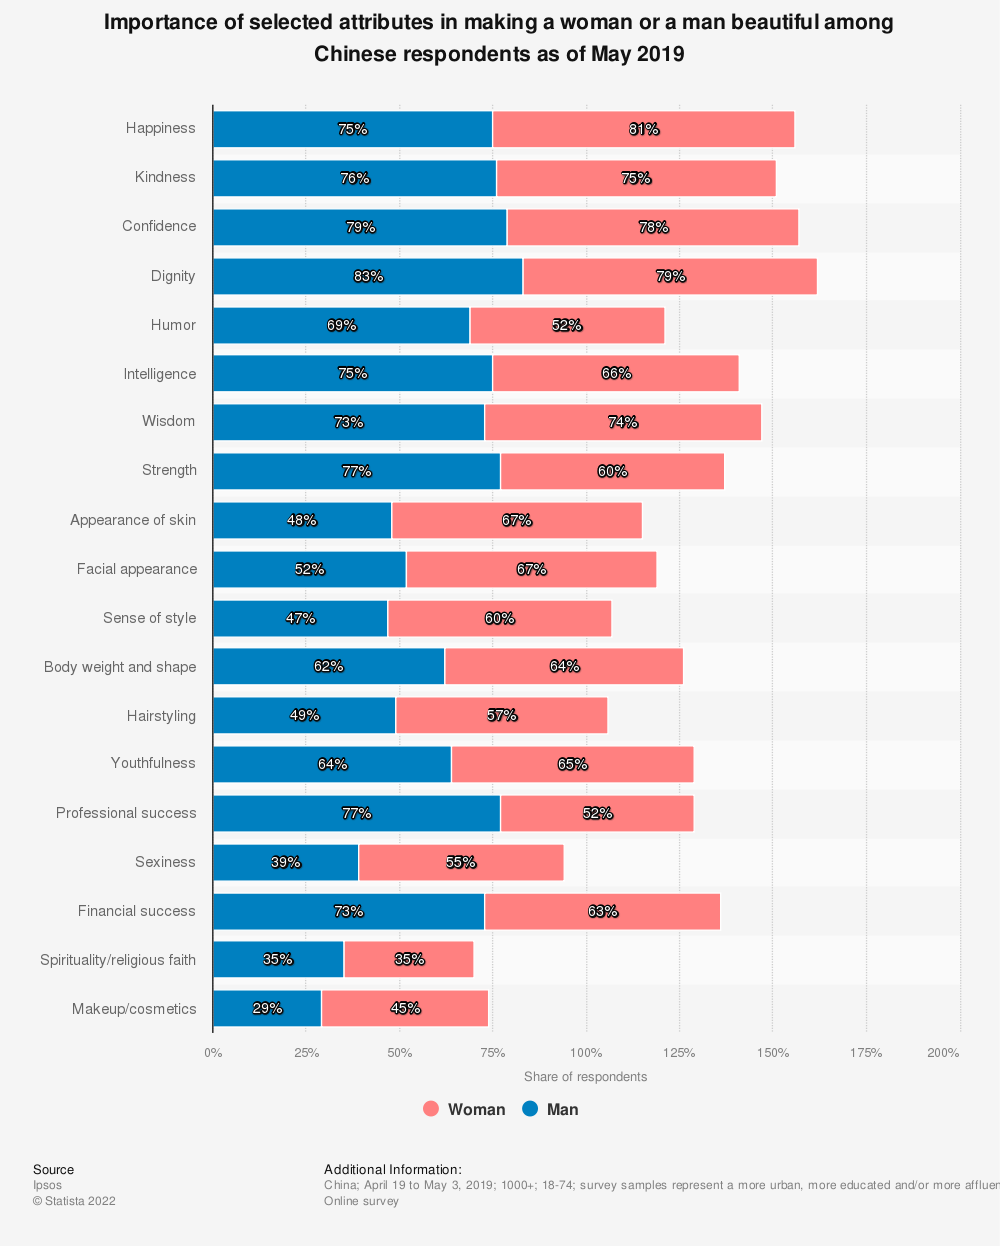 Statistic: Importance of selected attributes in making a woman or a man beautiful among Chinese respondents as of May 2019 | Statista